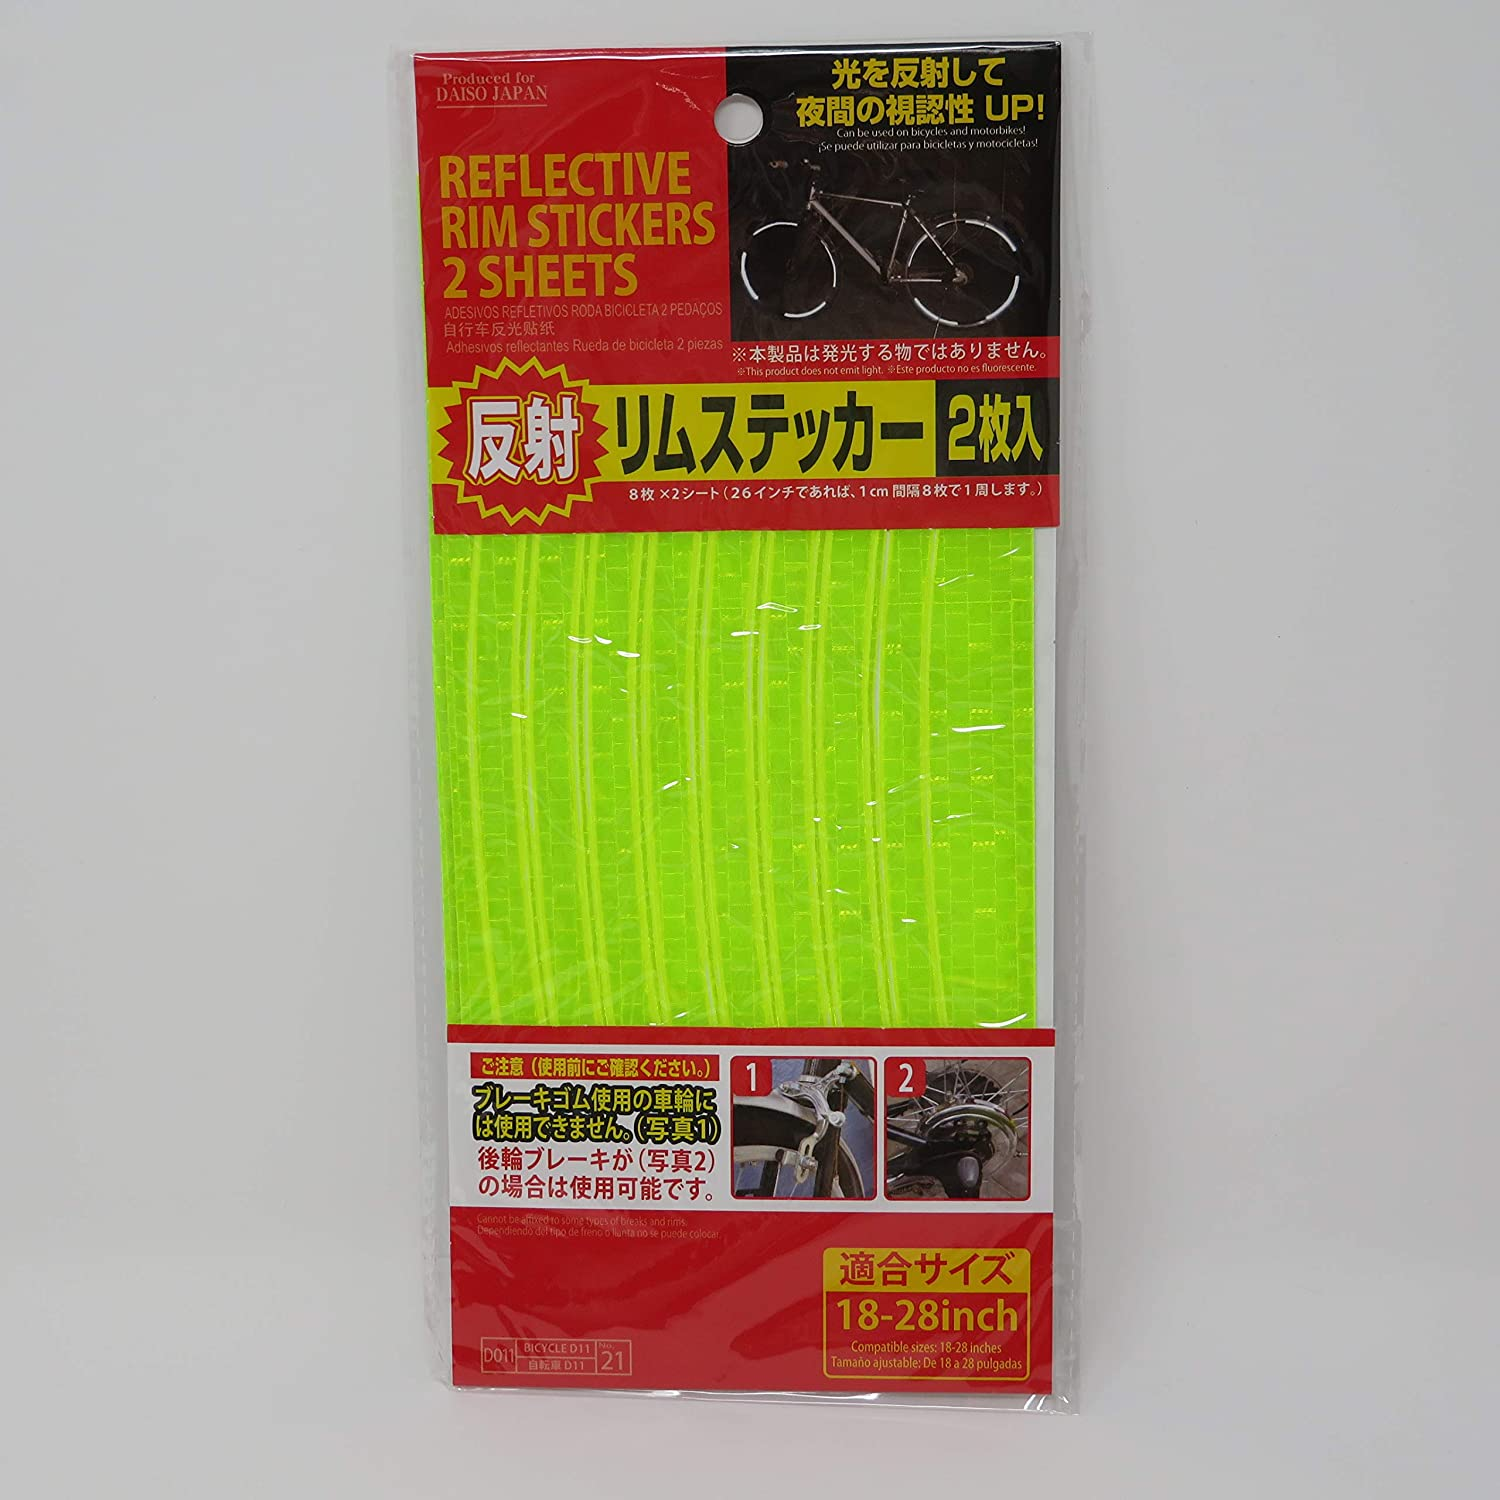 Compatible Sizes:18-28inches Compatible Sizes/:18-28inches Outdoor Safety Reflective Sticker for Bicycle Reflection to Light Pikattohikarunoyo Rim Reflective Stickers 16pcs